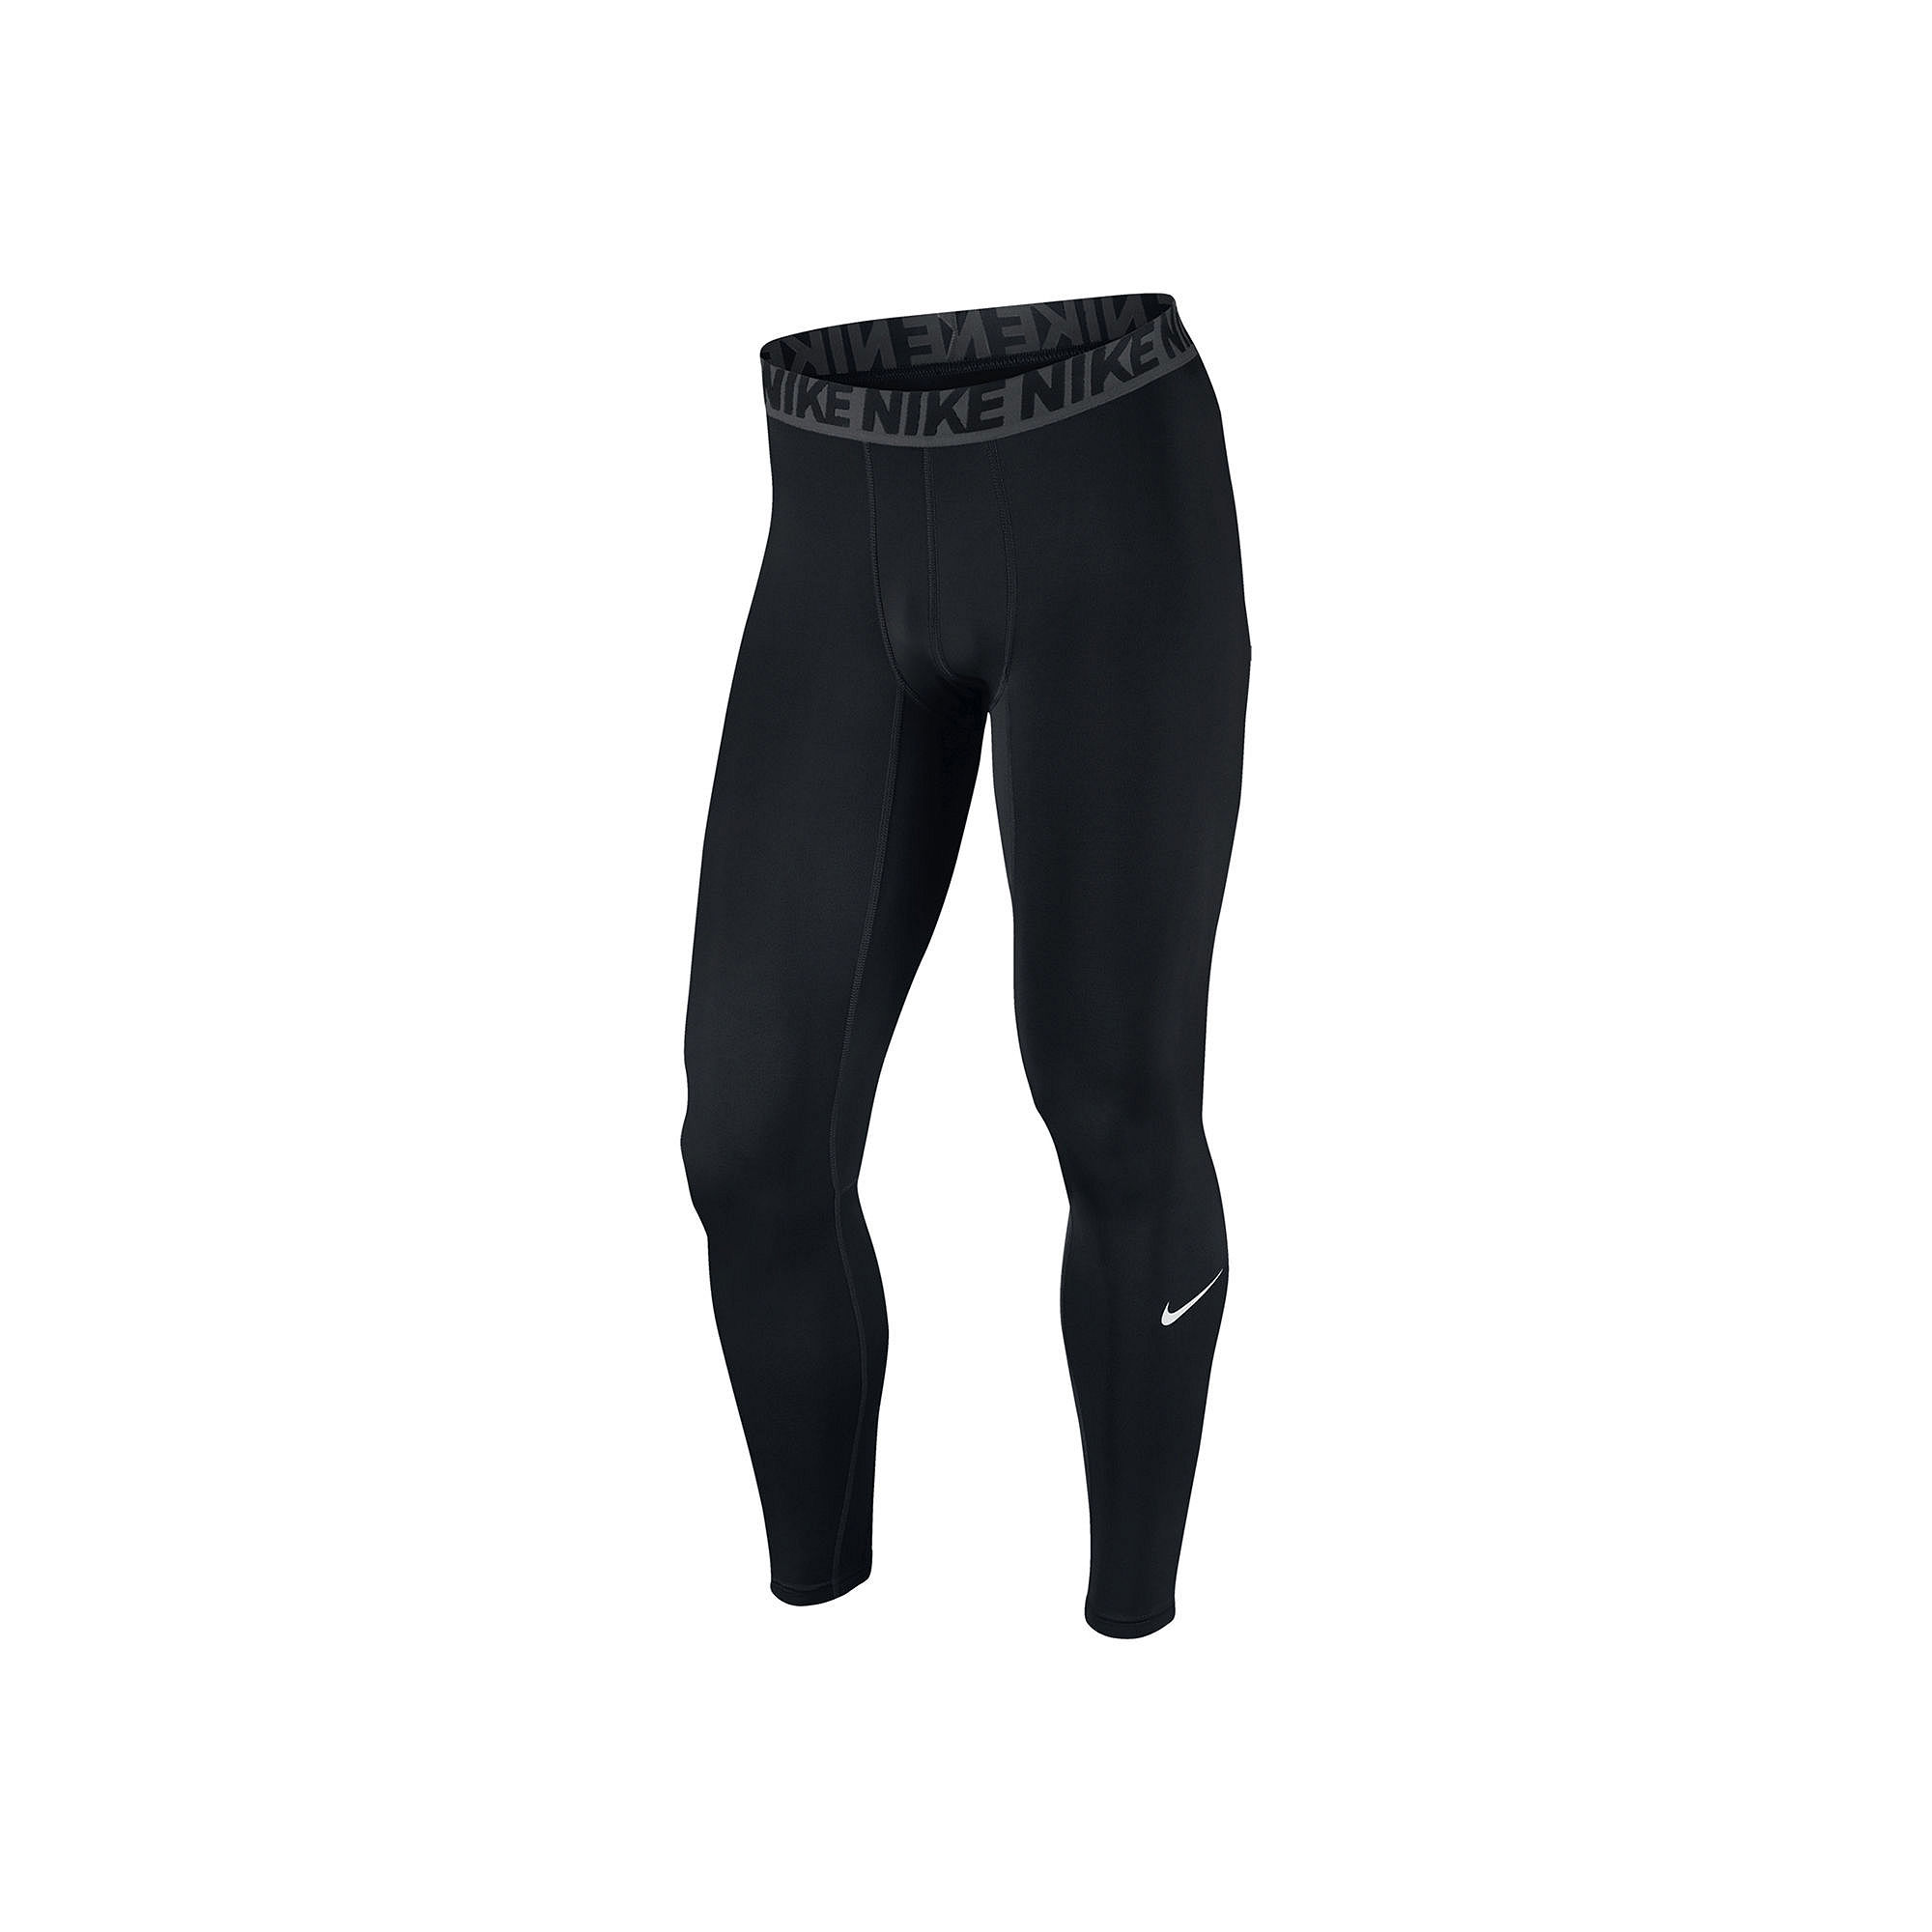 0b34afe2b3cb7 UPC 886060914446 product image for Nike Dri-FIT Base Layer Tights